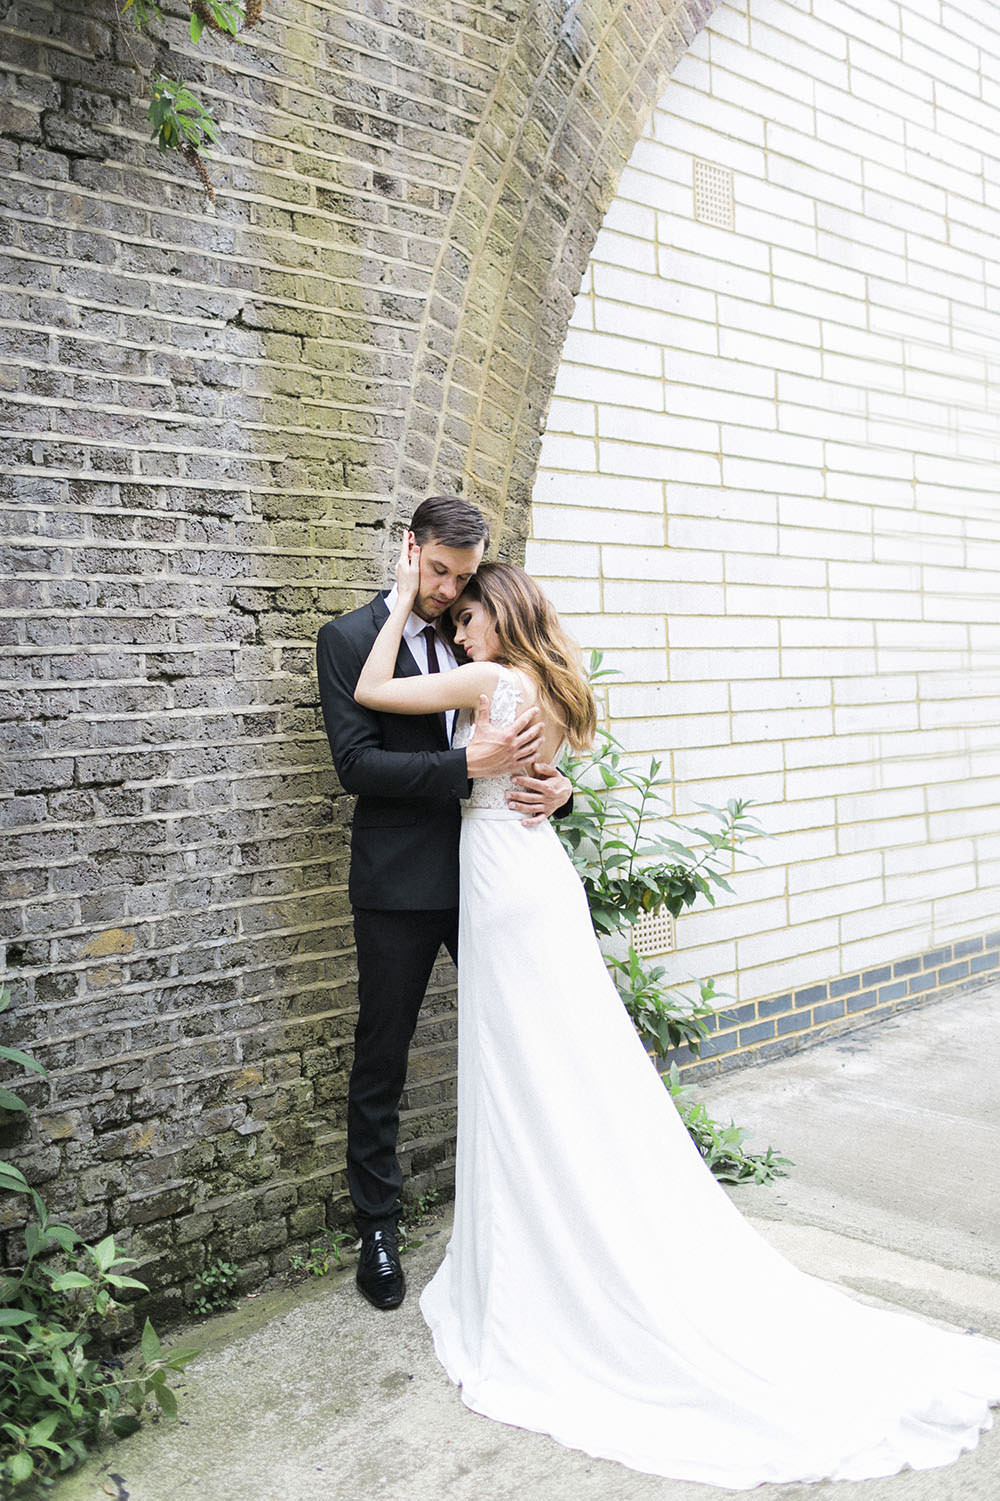 Dress Gown Bride Bridal Train Chiffon Straps Lace Flowers Burgundy Gold Wedding Ideas Sarah Porter Photography